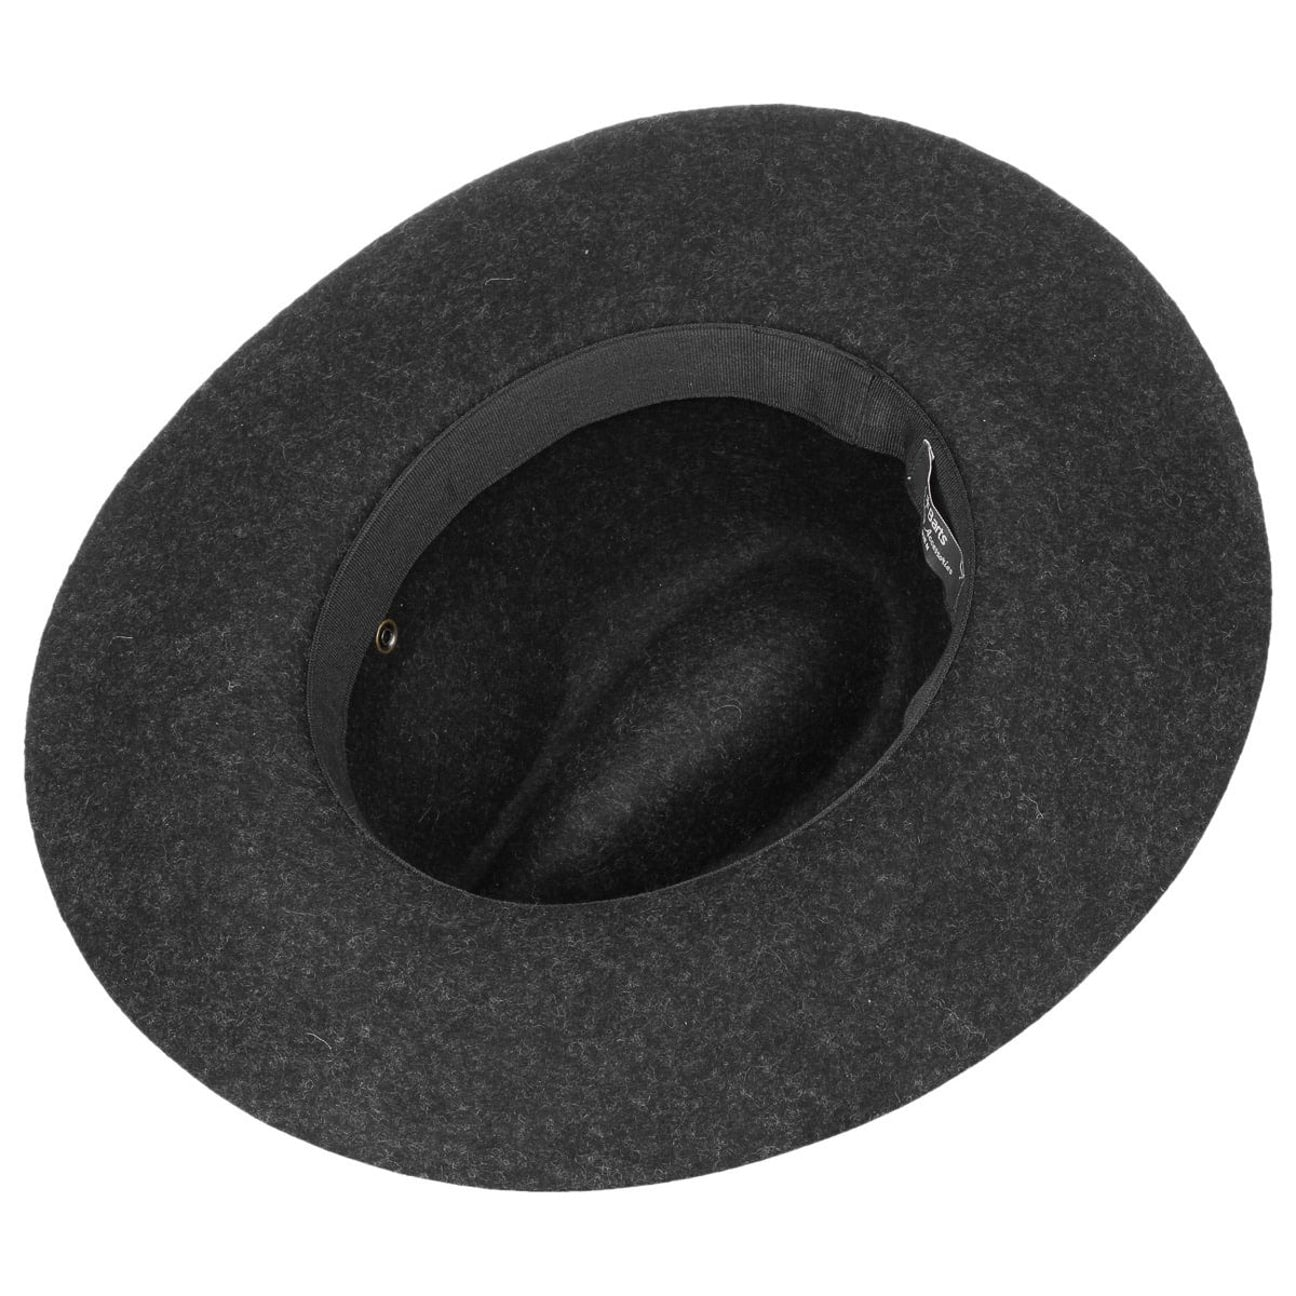 66a6bc22 ... Alexia Women´s Hat by Barts - anthracite 3 ...